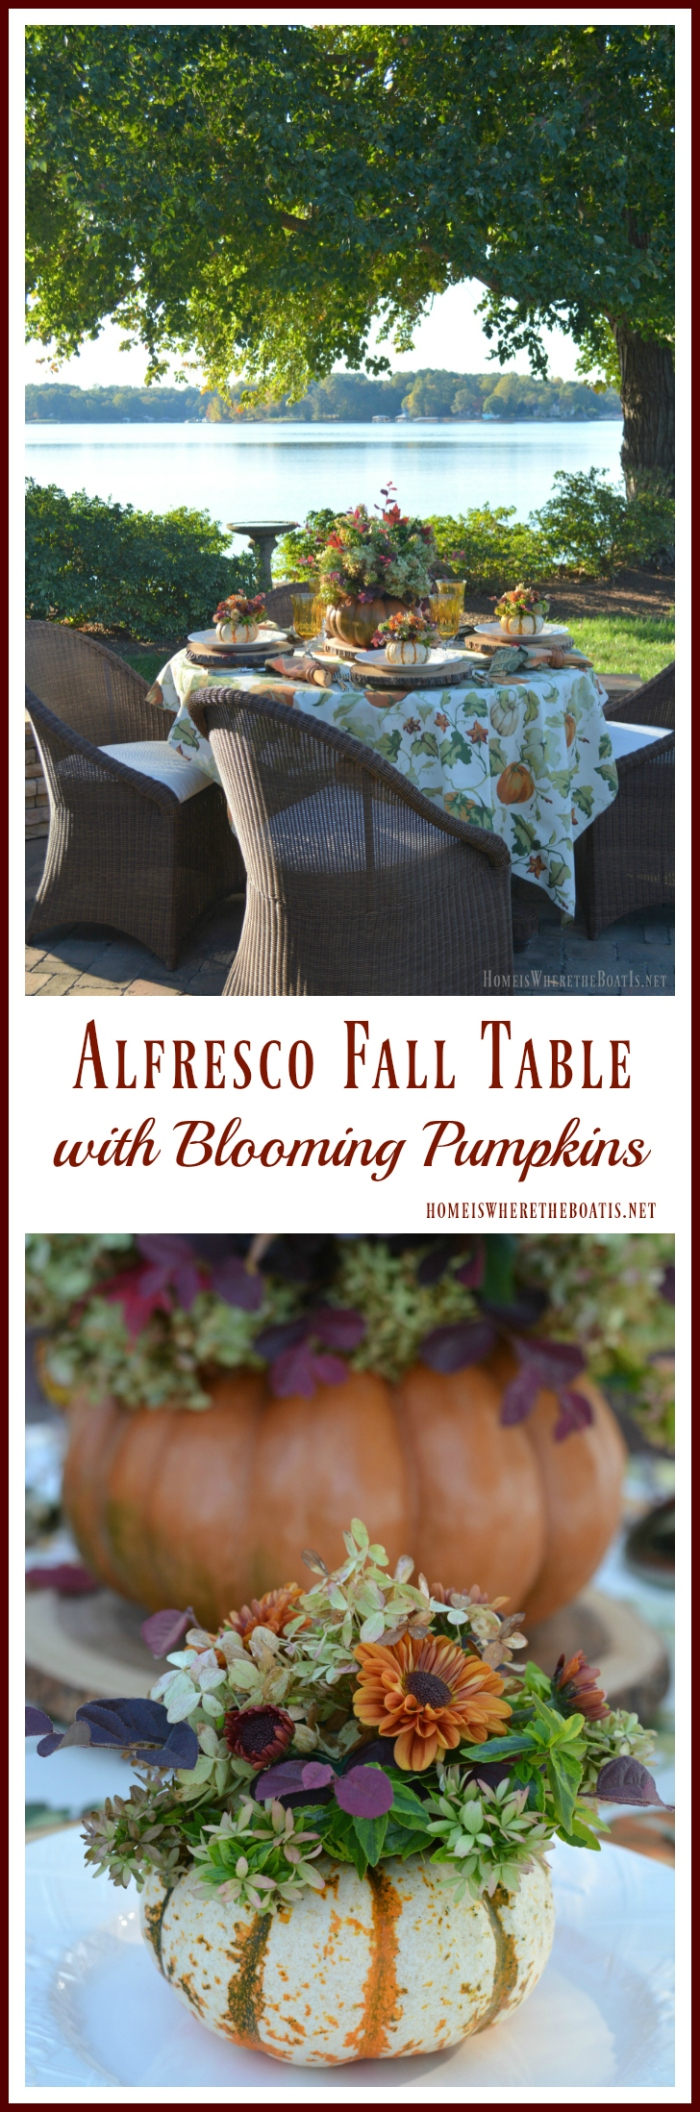 Alfresco Table with Blooming Pumpkins